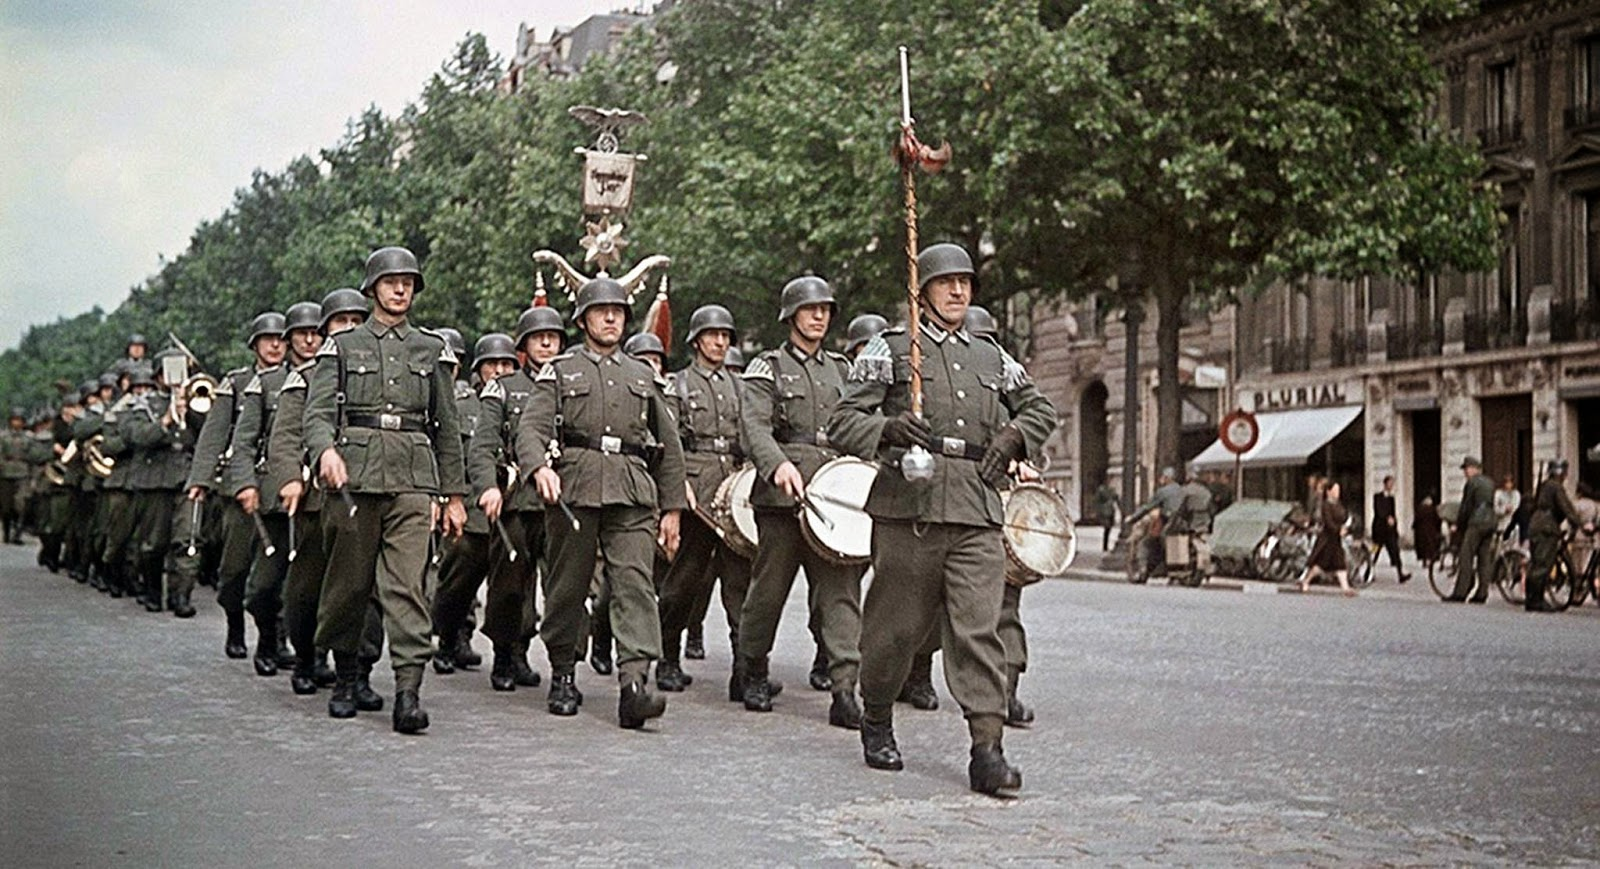 soldiers-marching-along-the-parade-route.-the-divisional-reichsadler-of-30.-infanterie-division-can-be-seen-in-background.jpg